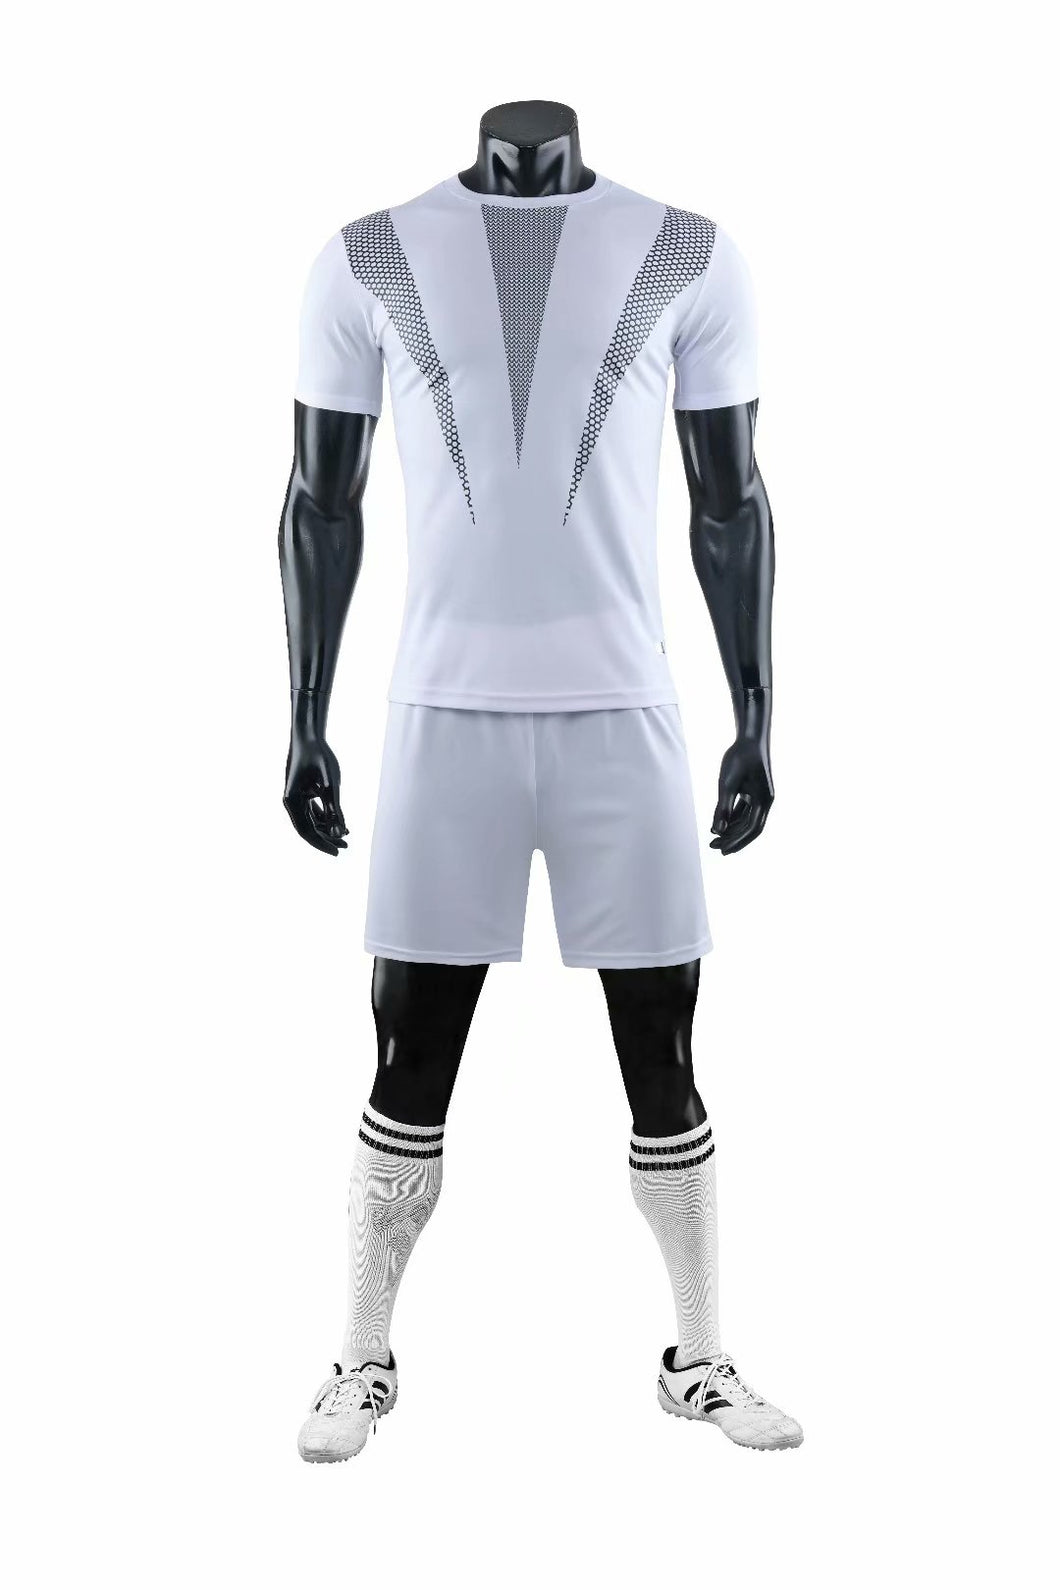 Full Football Kit - White with Grey 3 Stripe Design and Shorts.